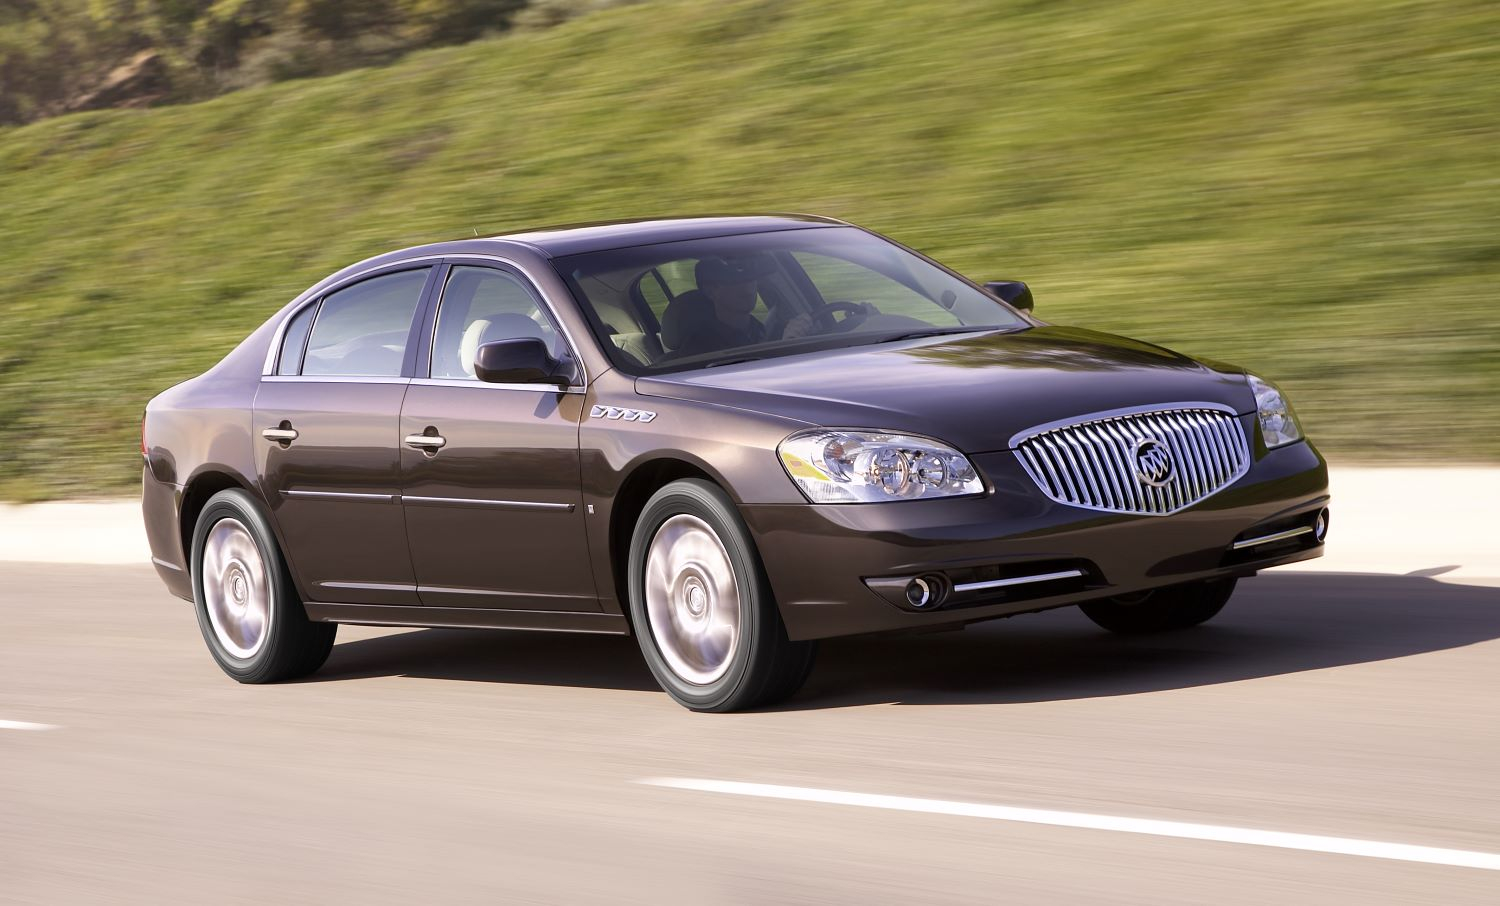 2006 Buick Lucerne Prone To Engine Problems | Gm Authority 2022 Buick Lucerne Interior, Problems, Review